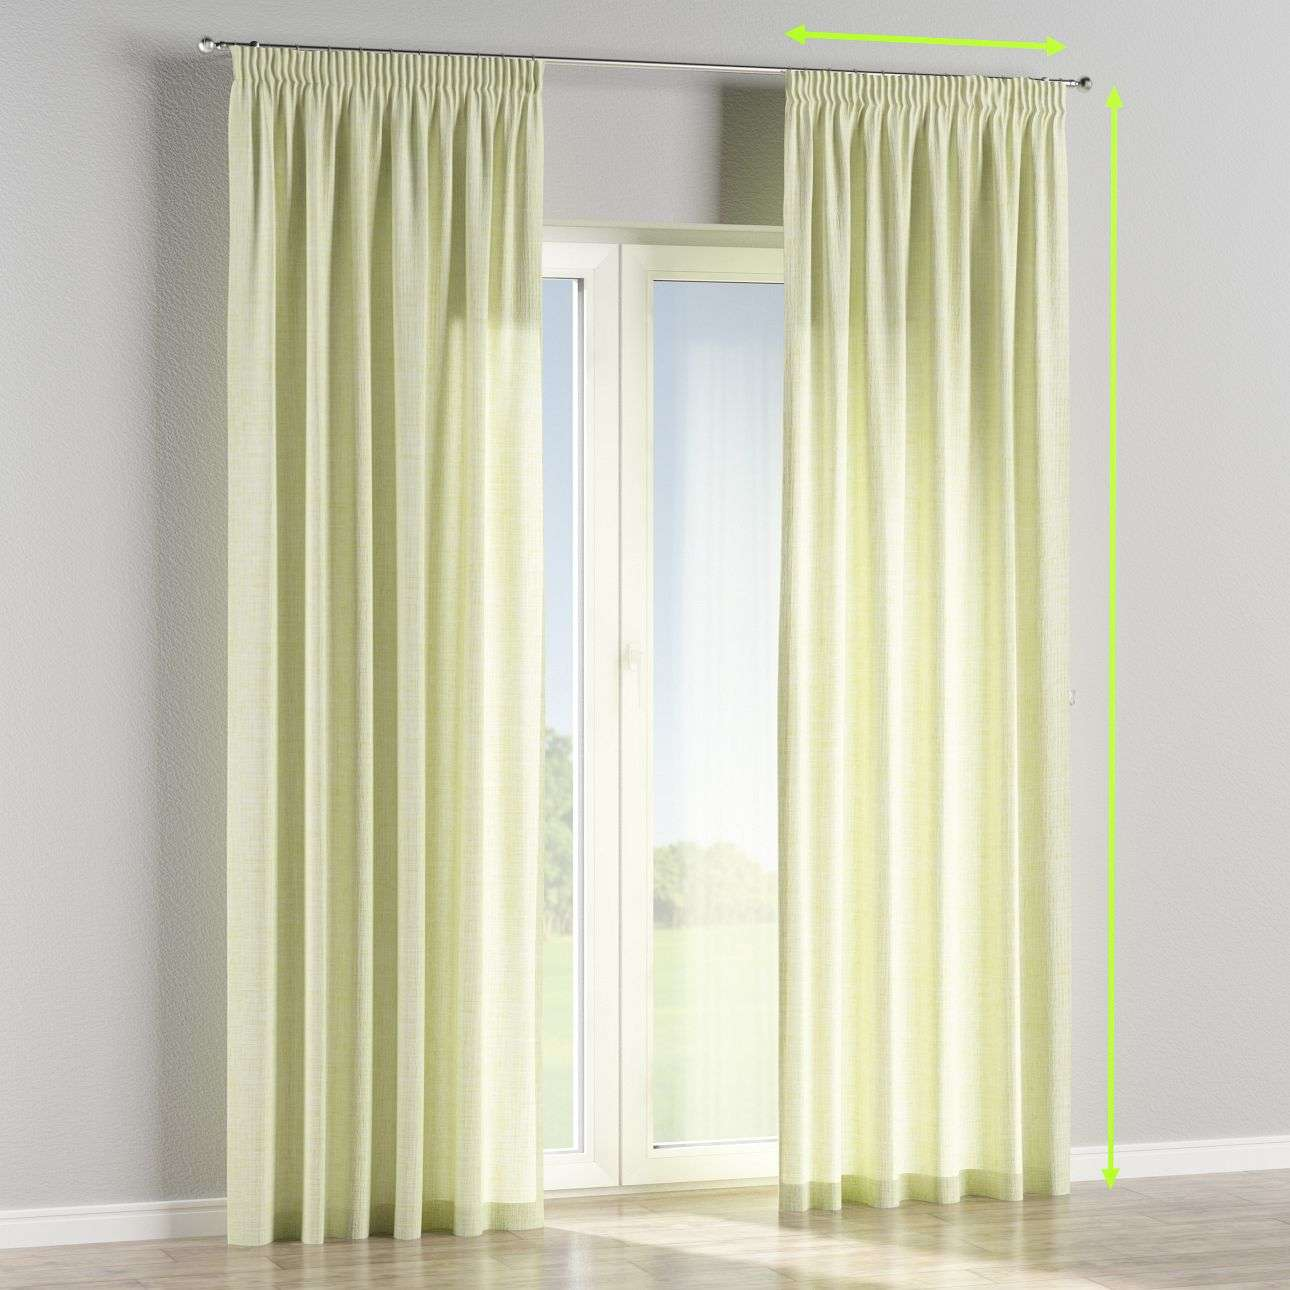 Pencil pleat curtains in collection Aquarelle, fabric: 140-73